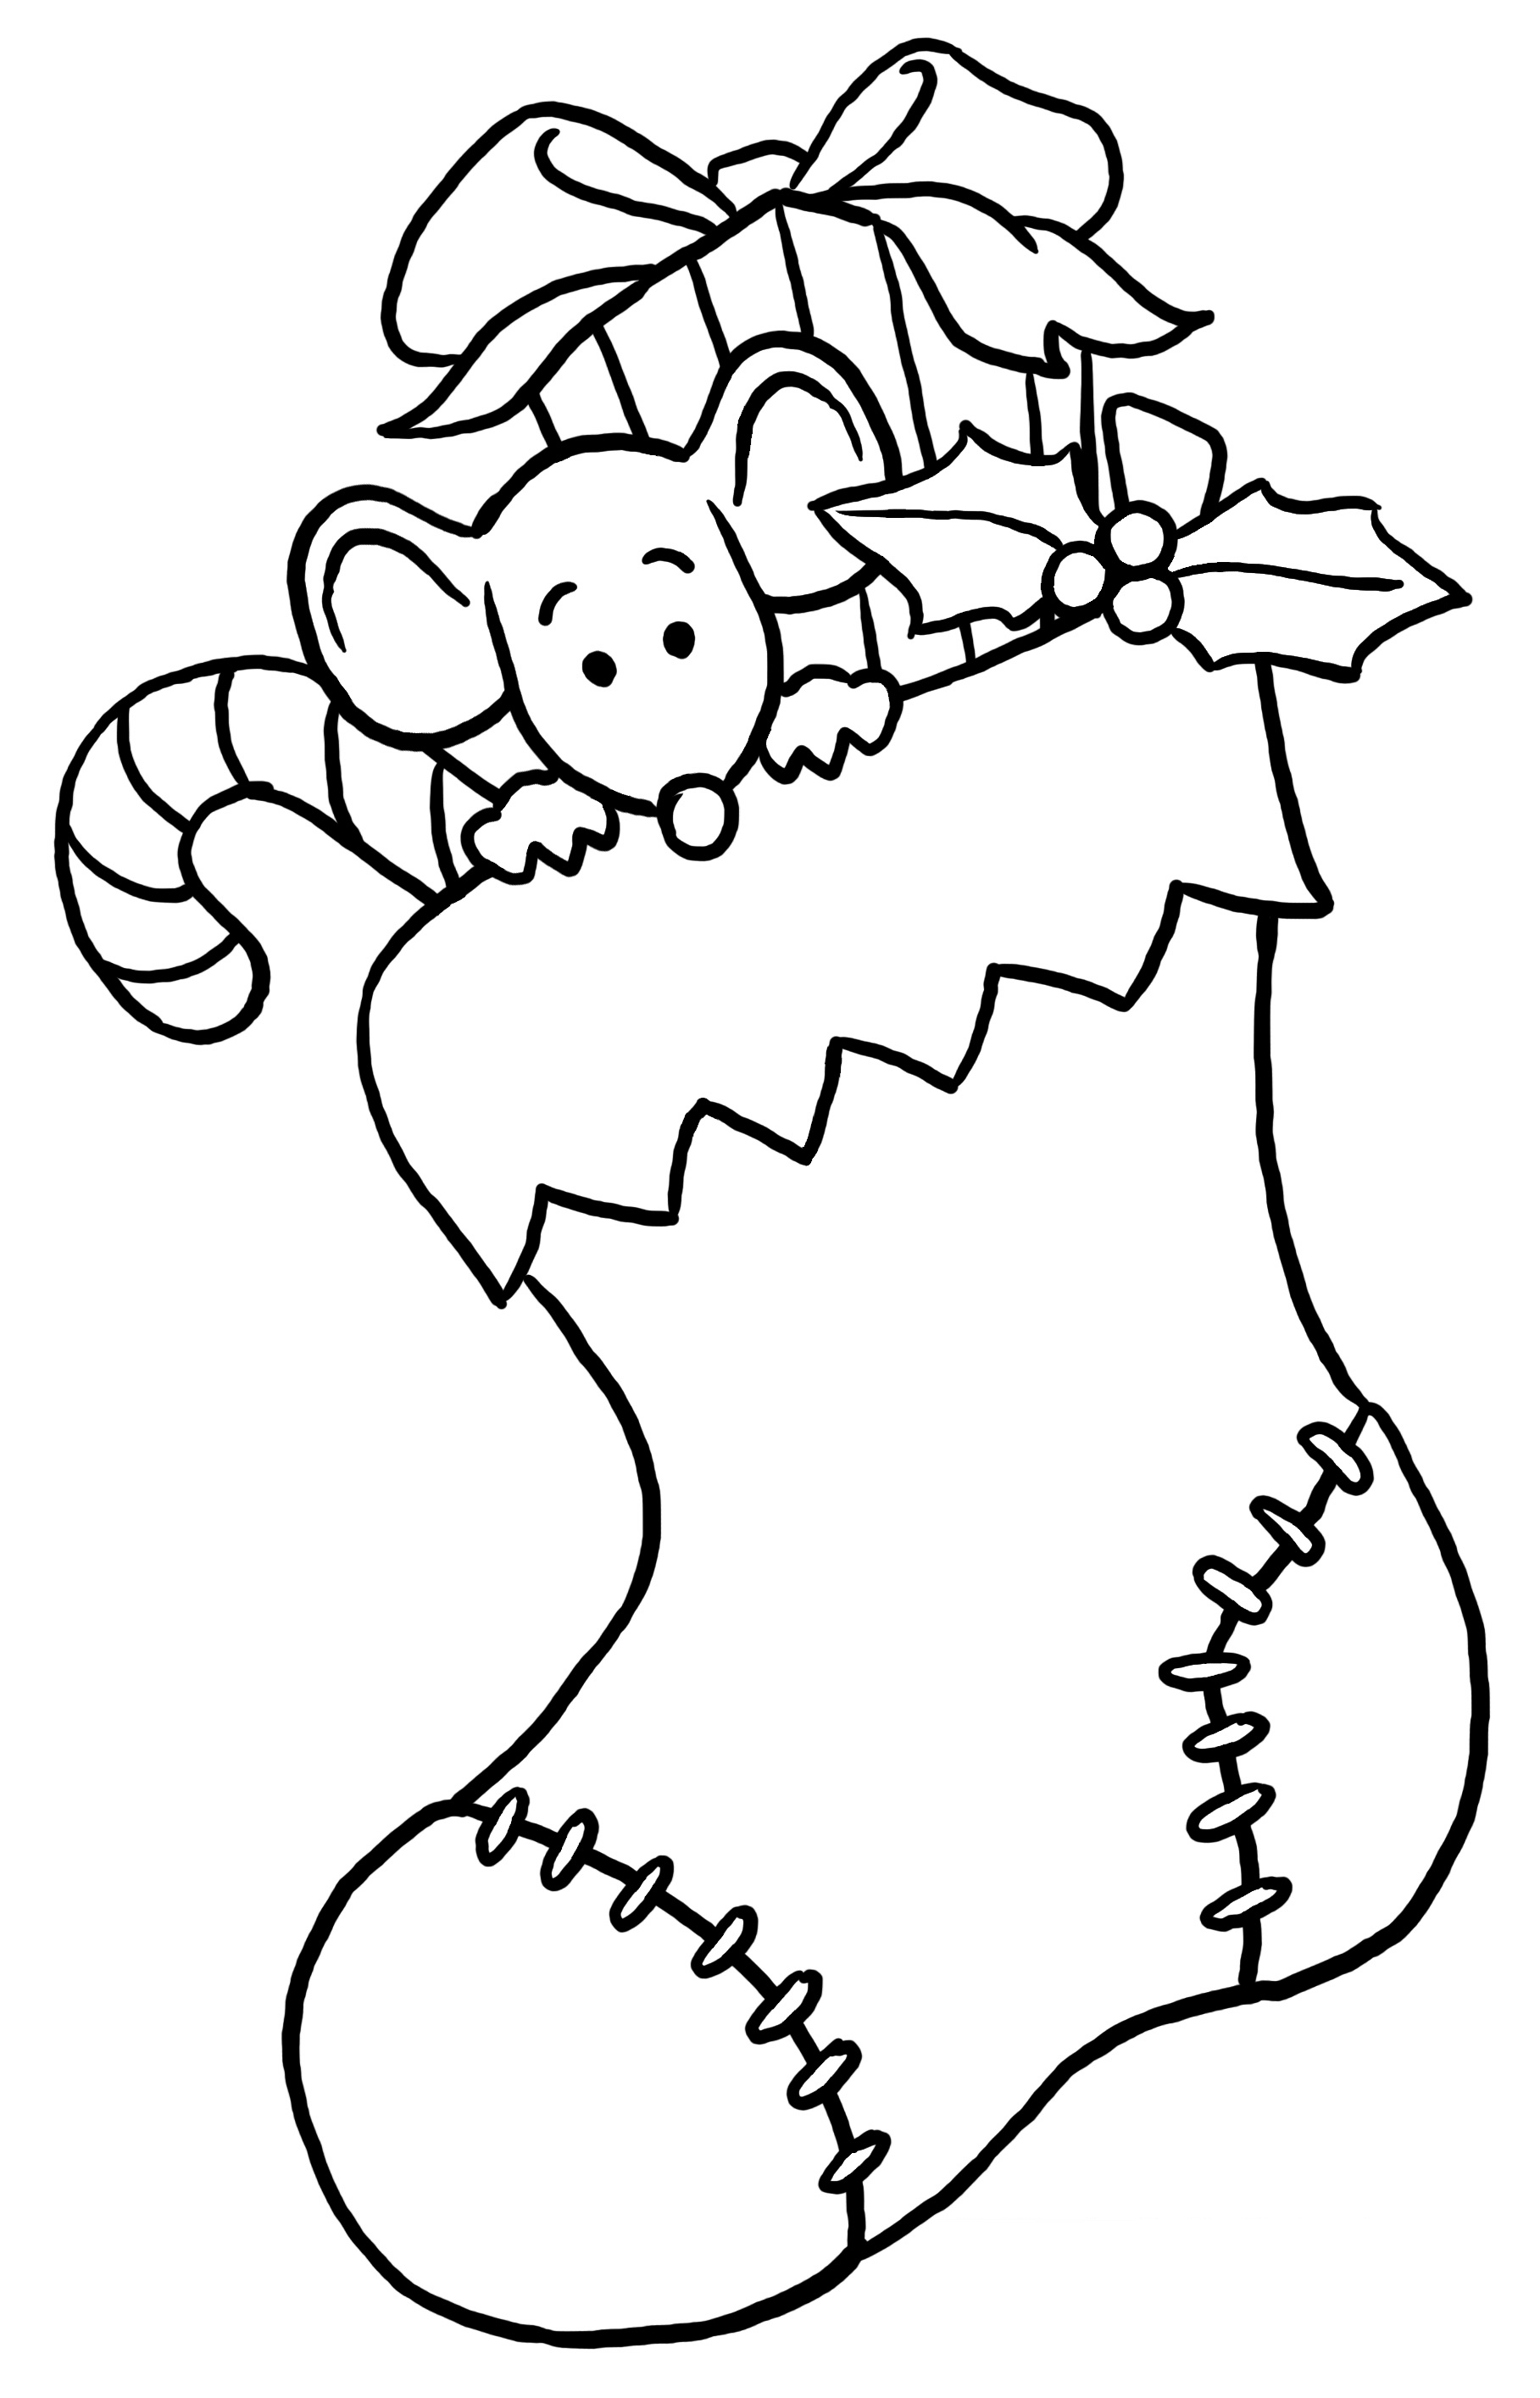 Christmas coloring page print coloring pages for all ages